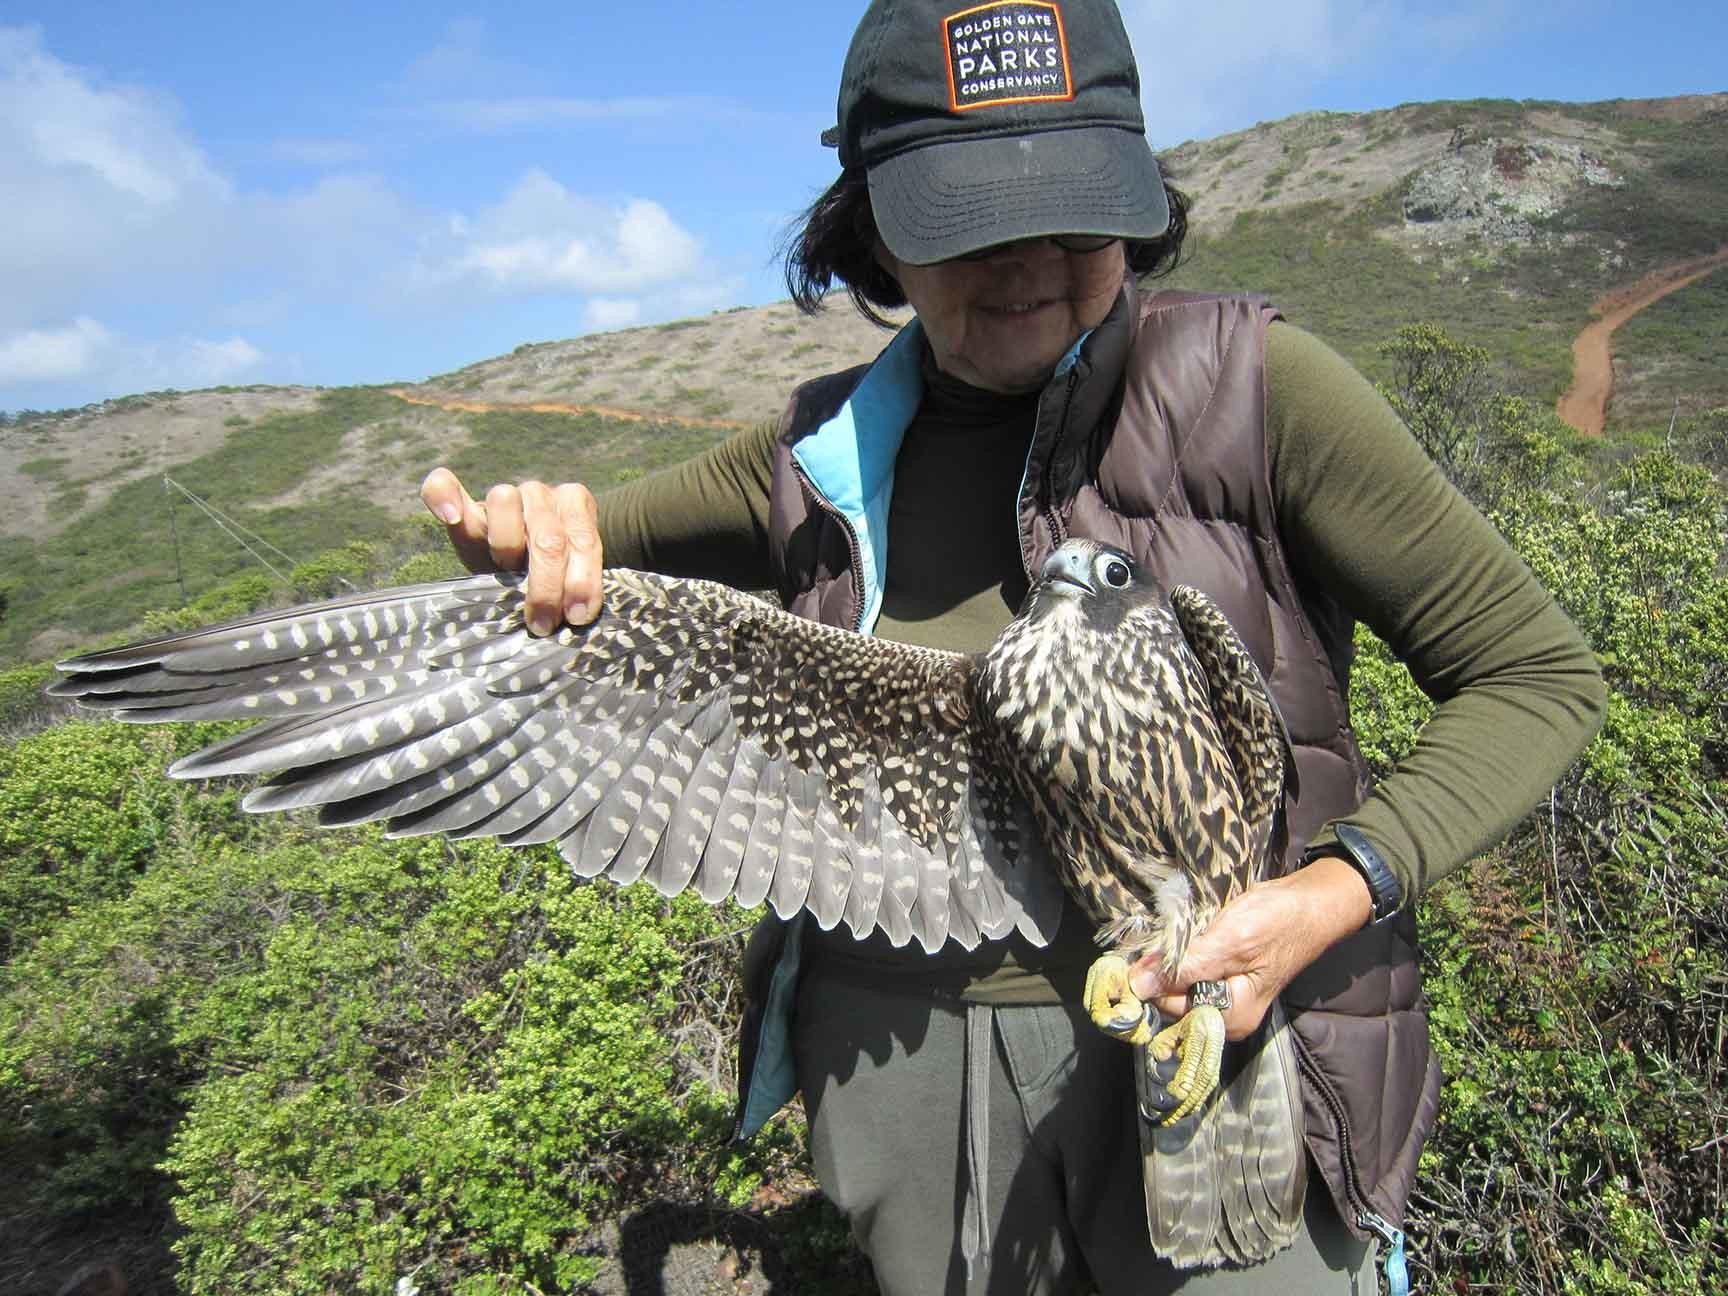 In August of 2018, GGRO volunteer banders recaptured Peregrine 11AM—one of the three chicks banded by Zeka at the Campanile earlier that year—healthy and hunting in the Marin Headlands.